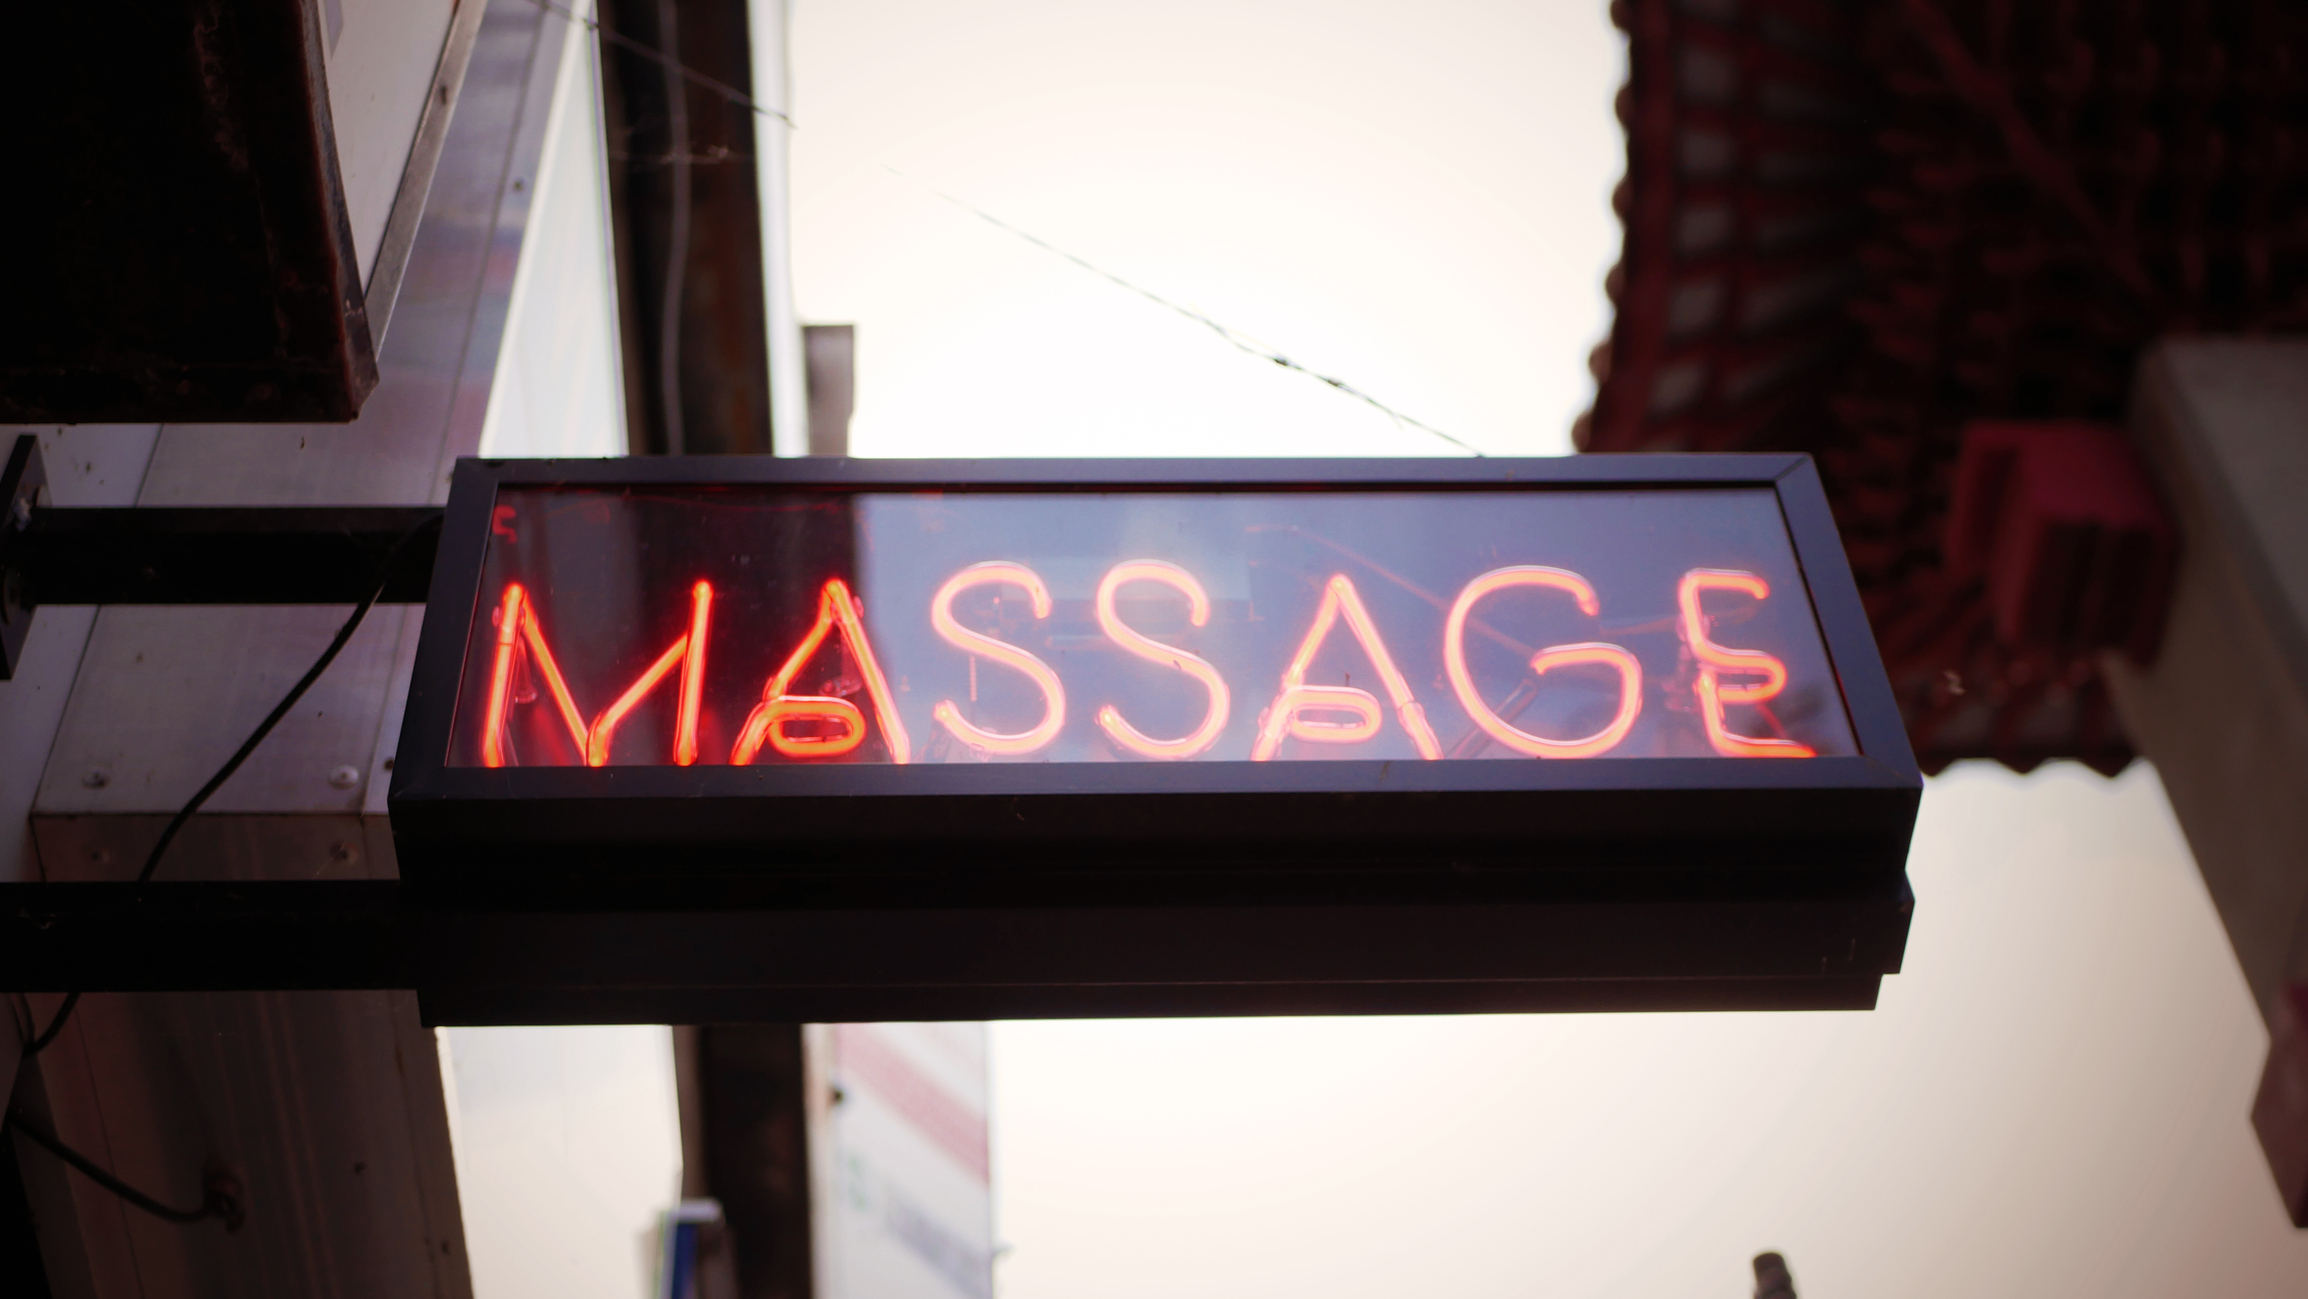 Where All the Massage Parlors Gone?